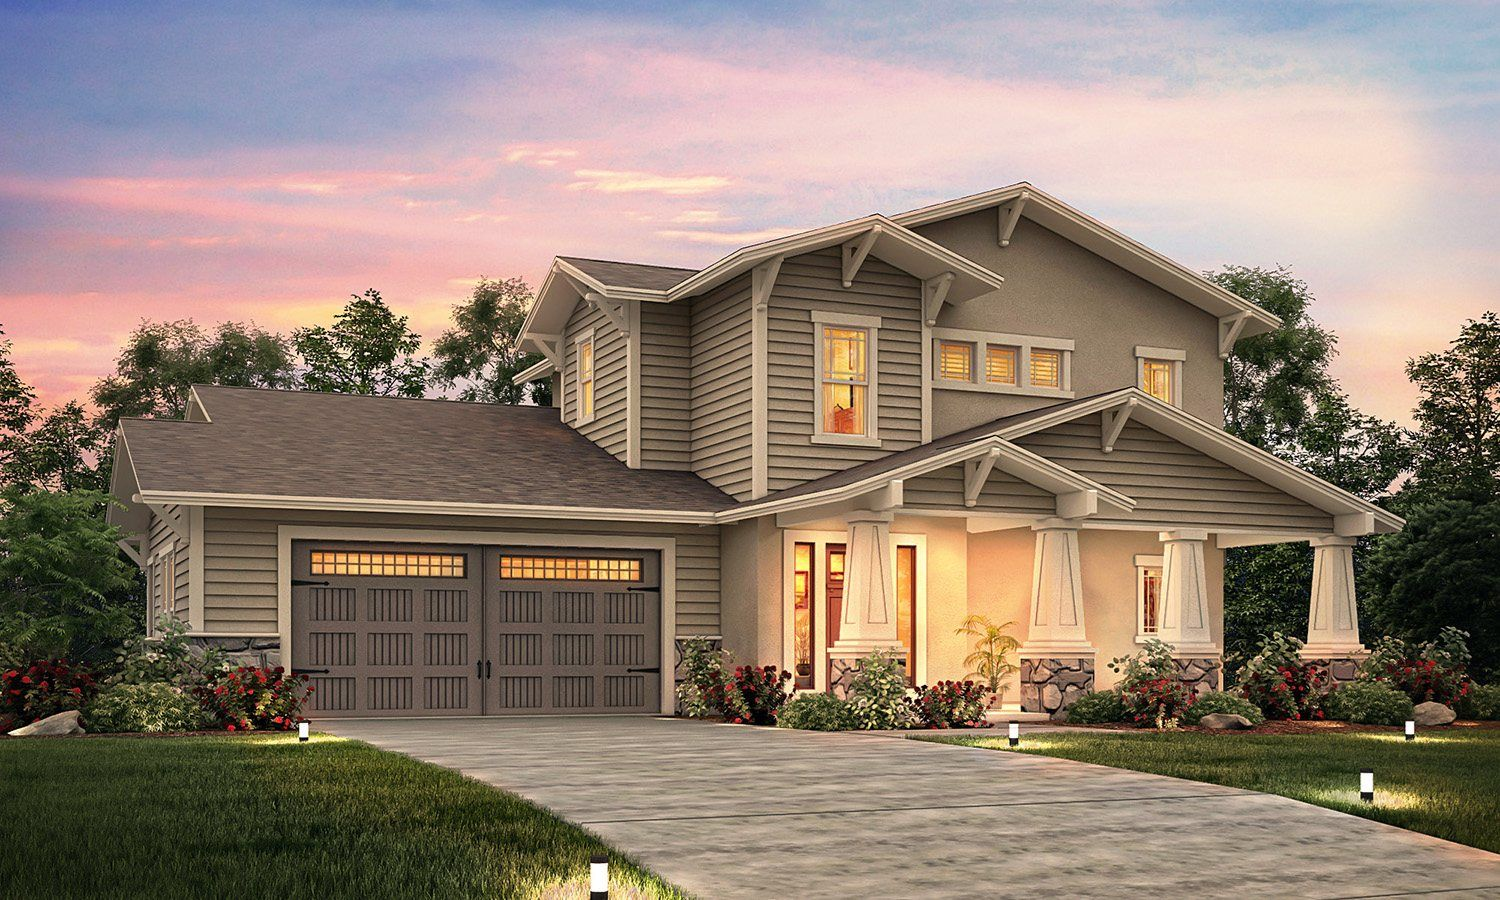 Photo of The Oaks in Concord, CA 94521 House exterior